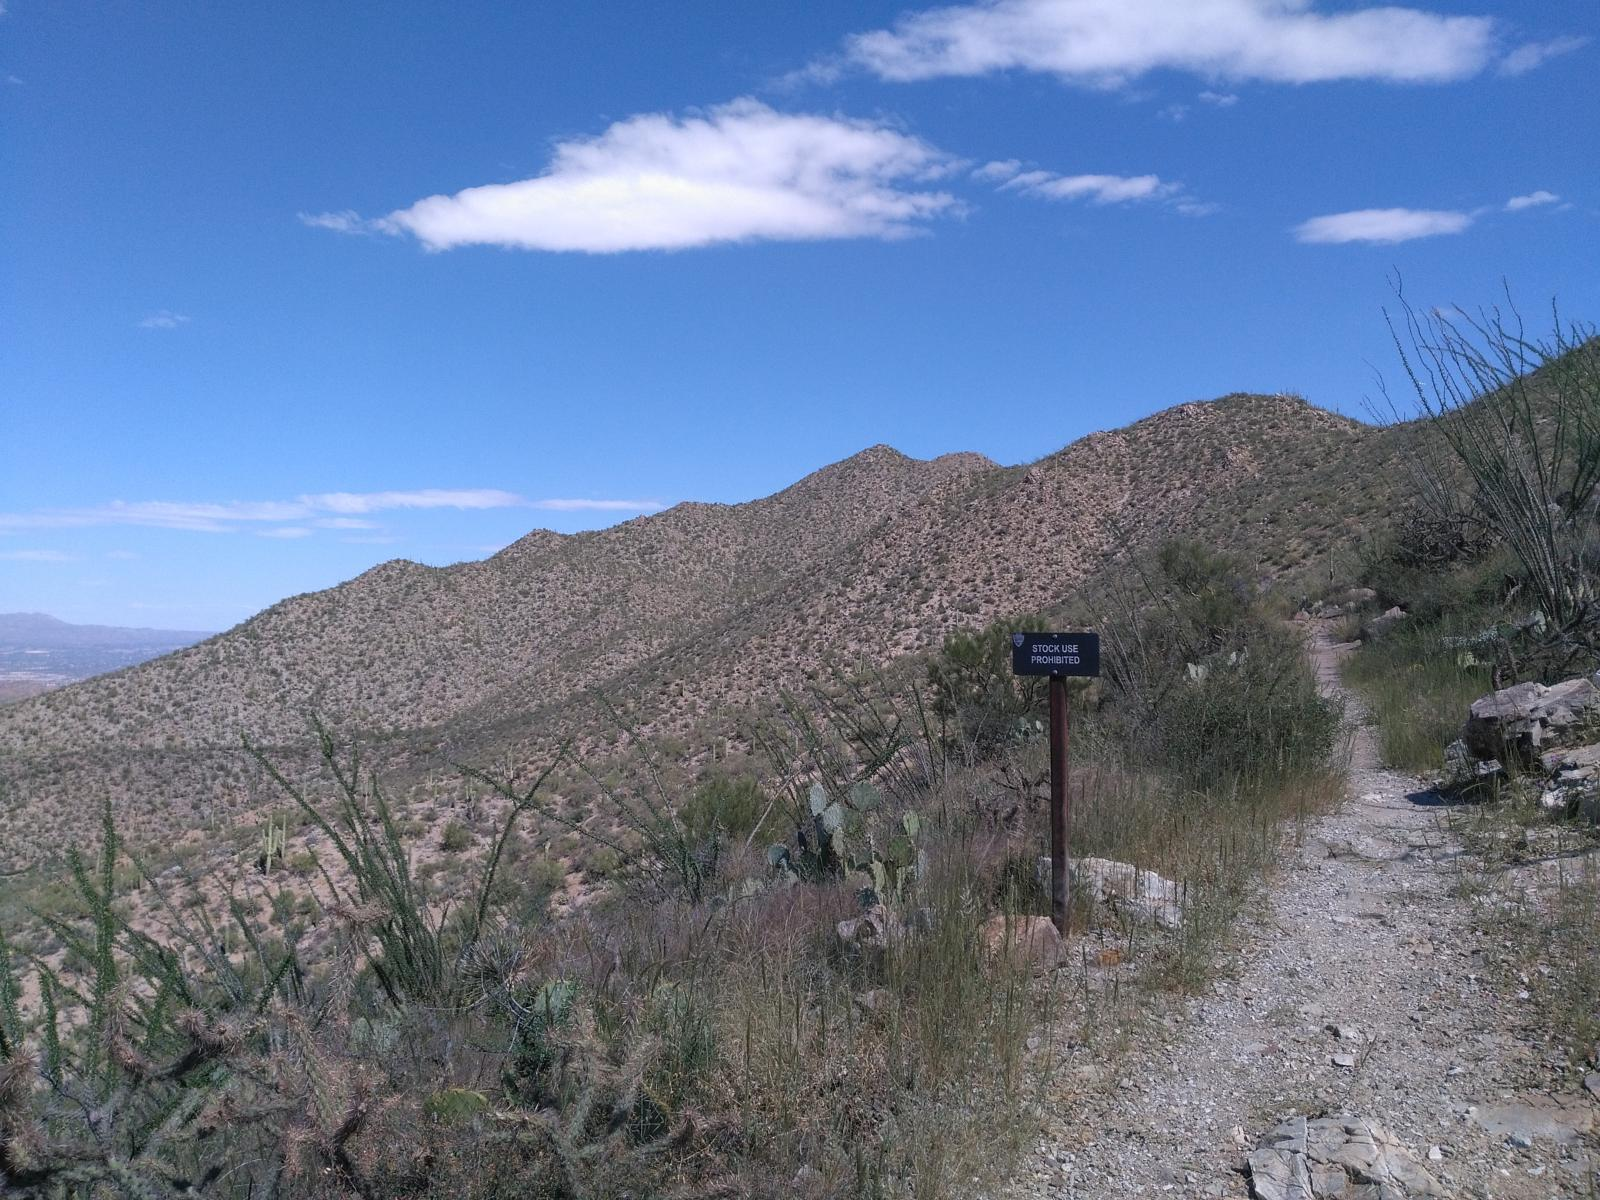 Photo of 2016/09 Saguaro National Park trail uphill